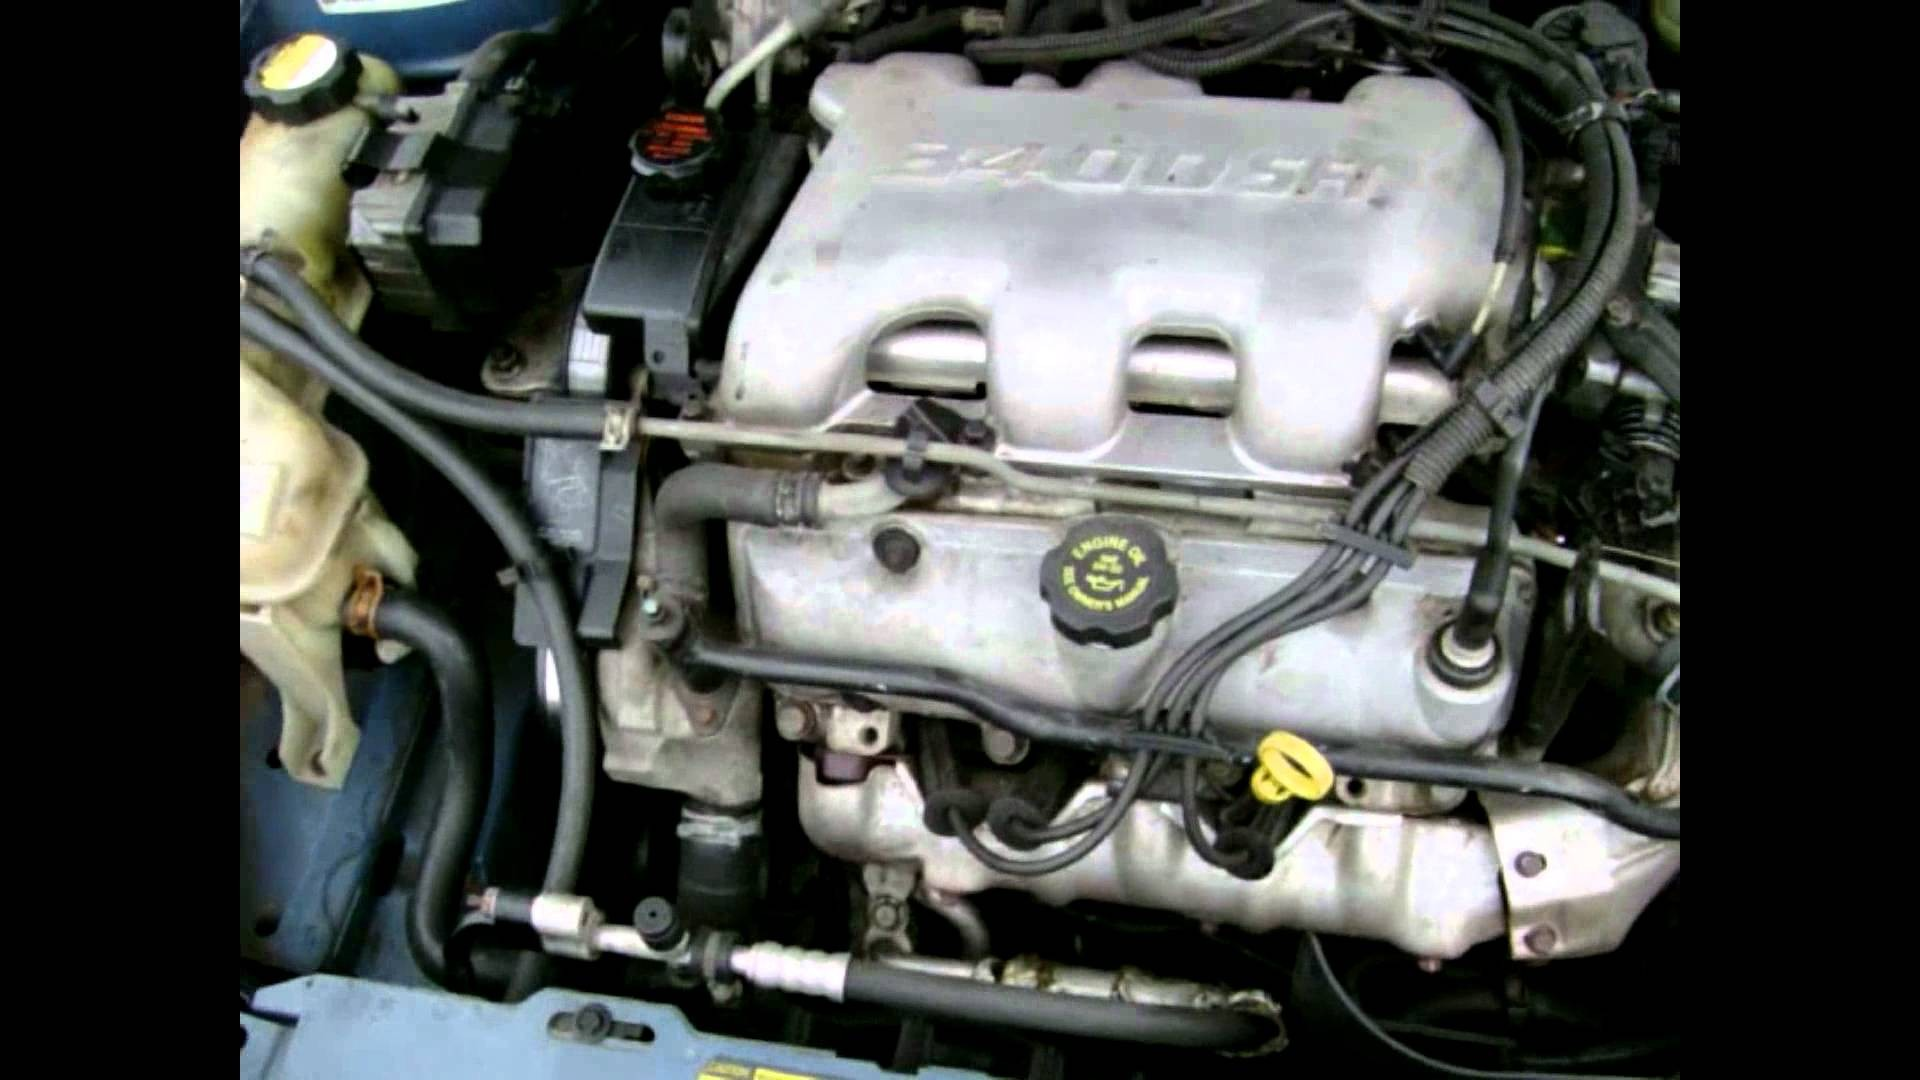 2001 pontiac aztek engine diagram 3400 gm engine 3 4 liter motor rh detoxicrecenze com 3.4L V6 Engine Problems 95 Camaro 3.4 Engine Diagram